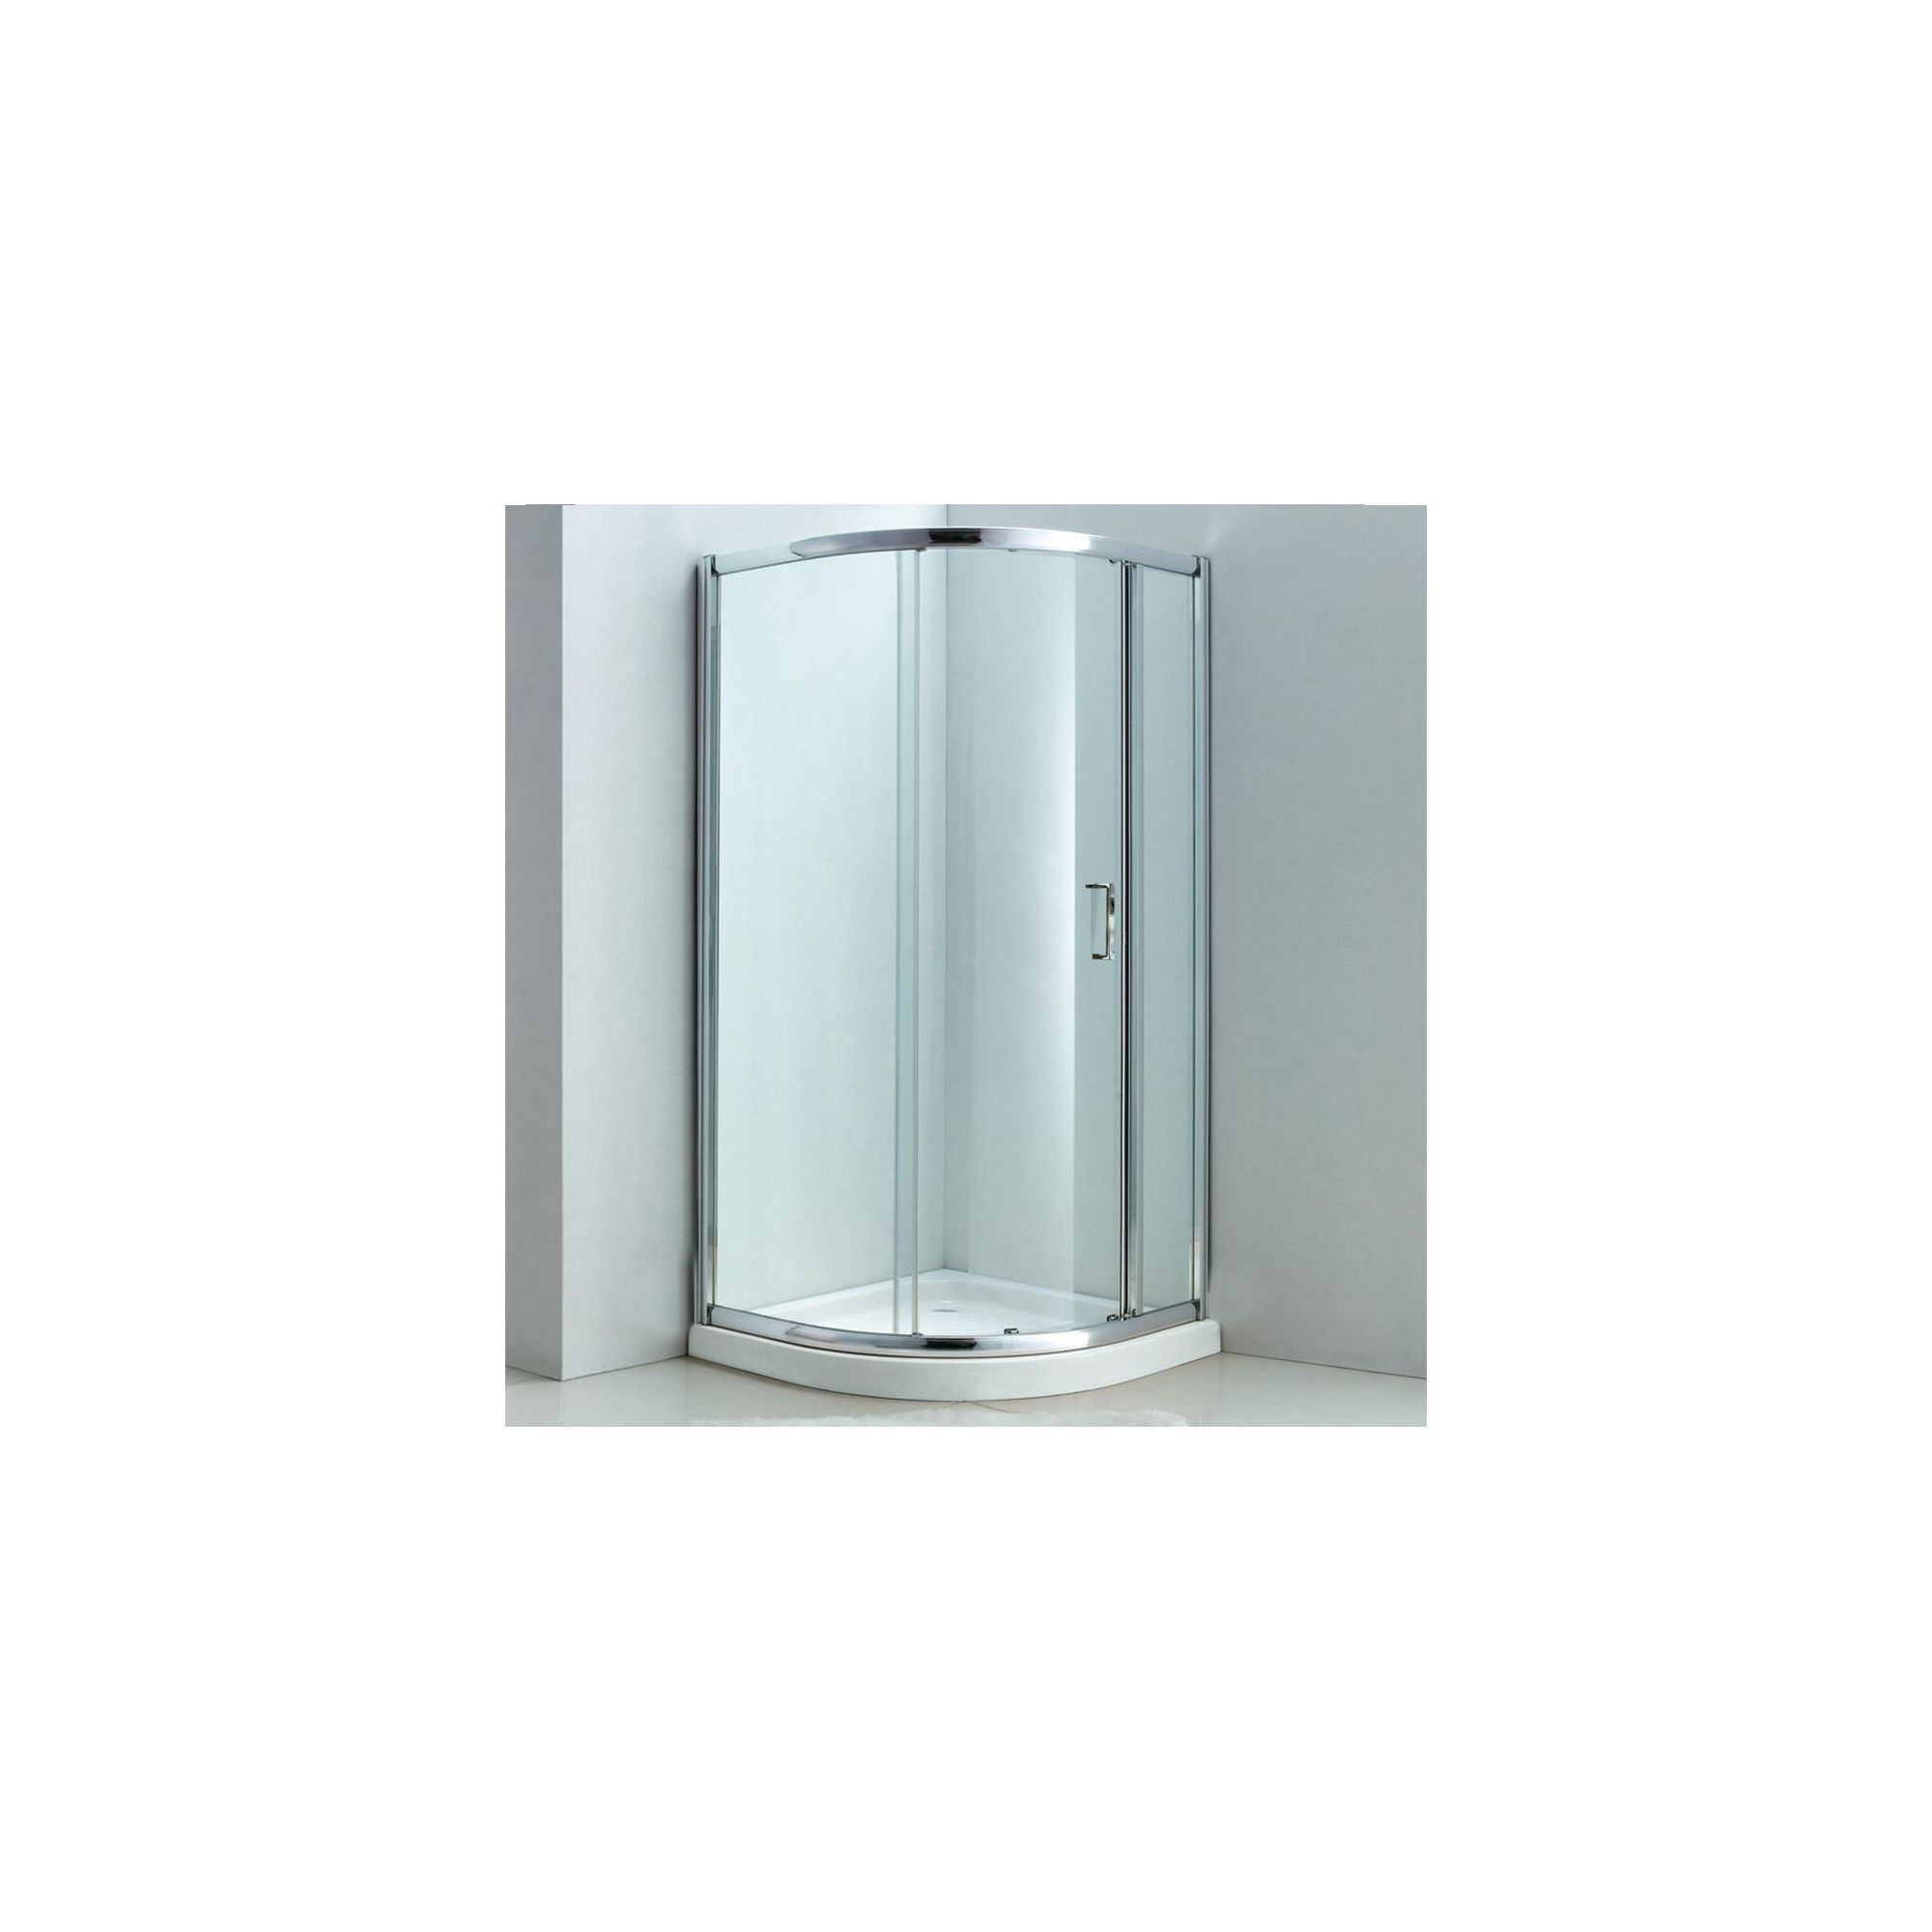 Duchy Style Single Quadrant Door Shower Enclosure, 800mm x 800mm, 6mm Glass, Low Profile Tray at Tesco Direct